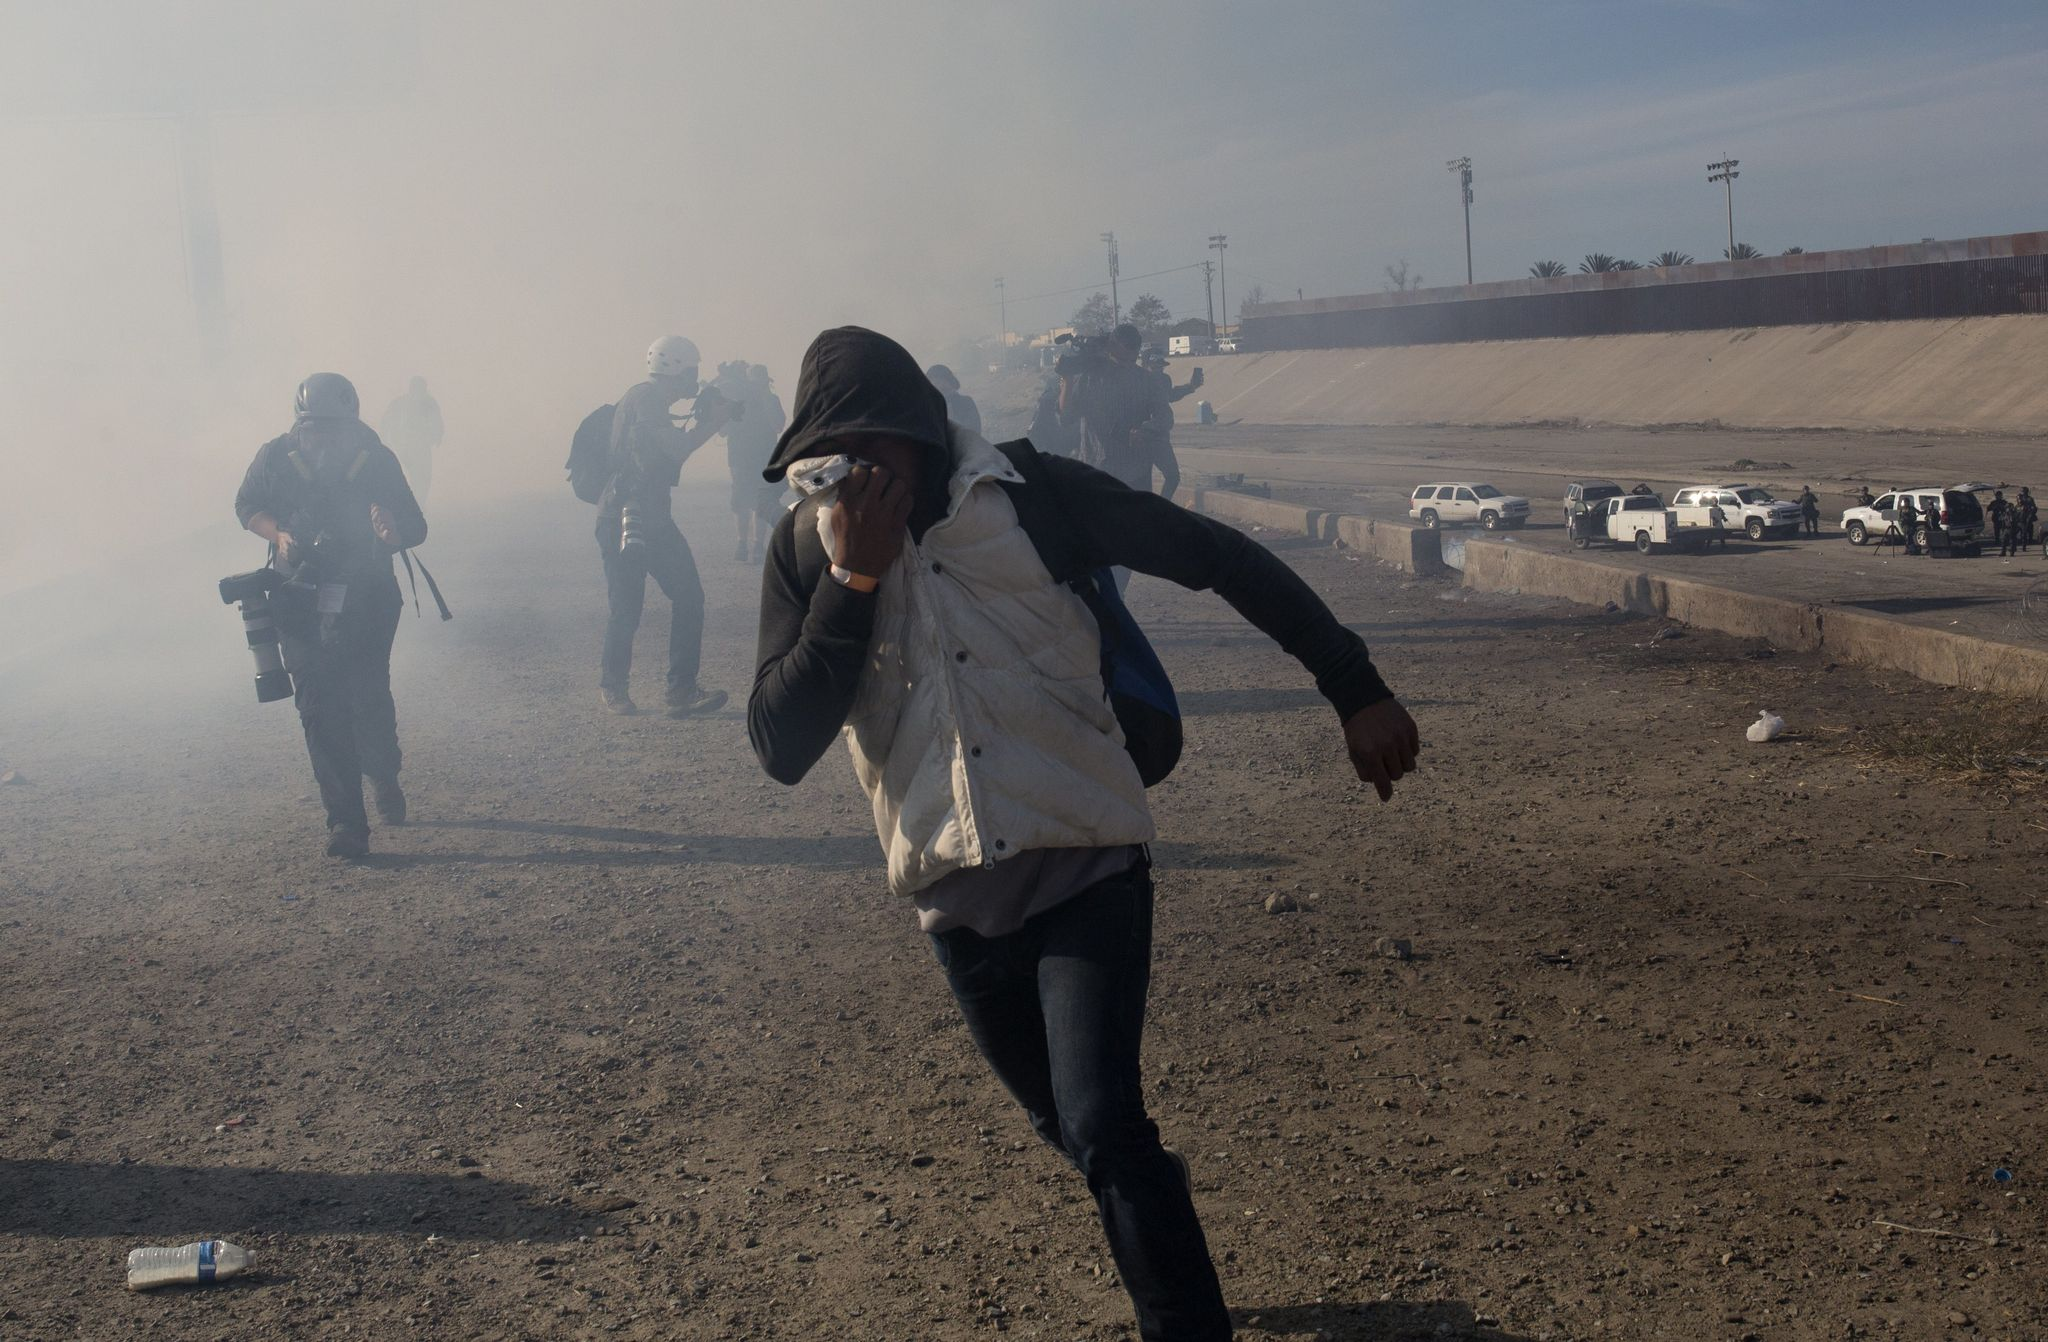 Tear gas used once a month at border under Obama